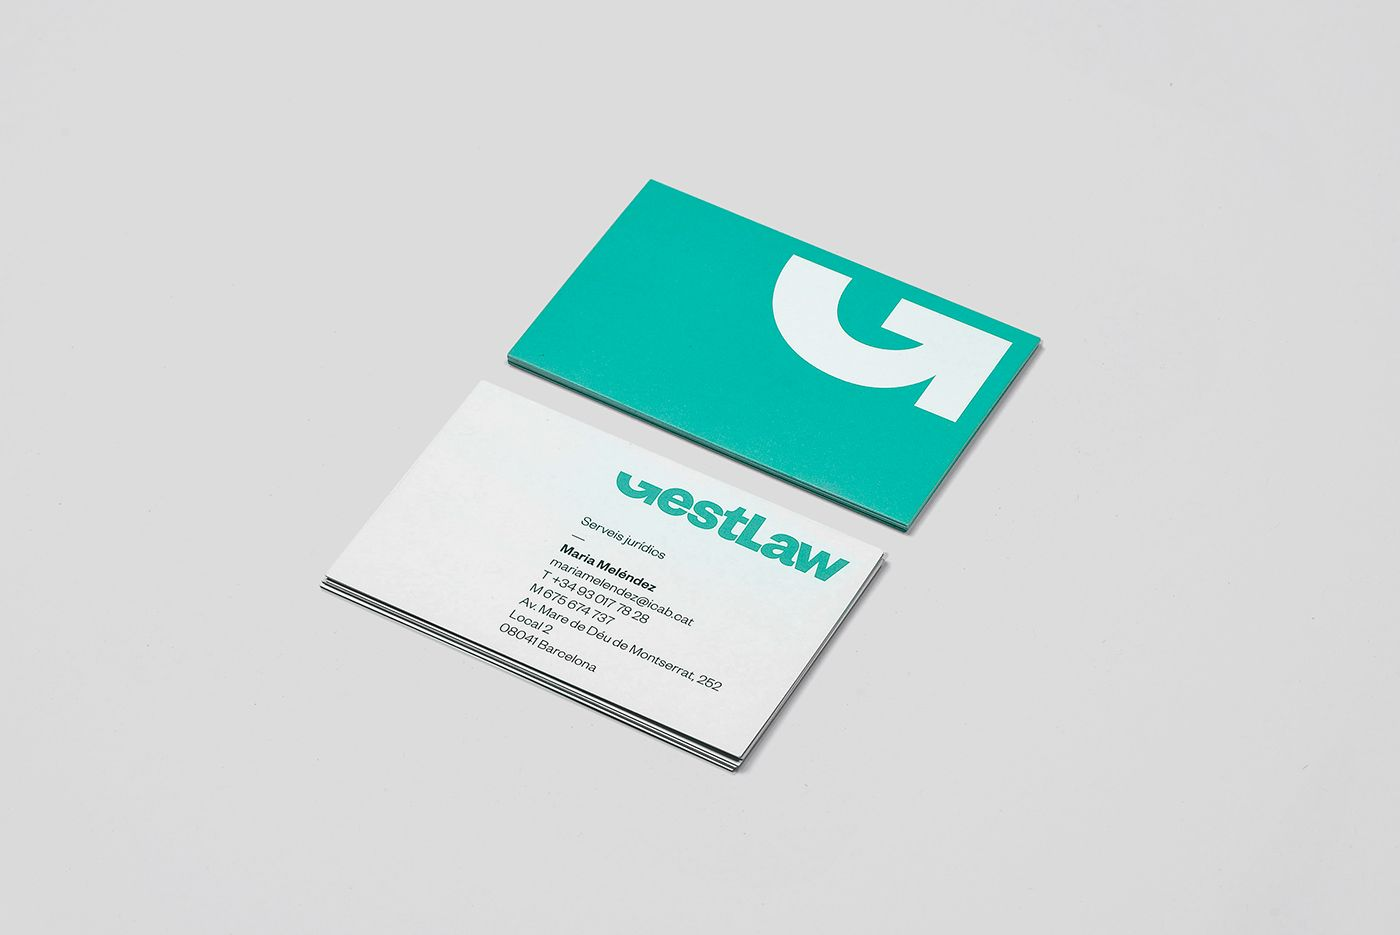 Gestlaw On Behance Tot Projects Stationery